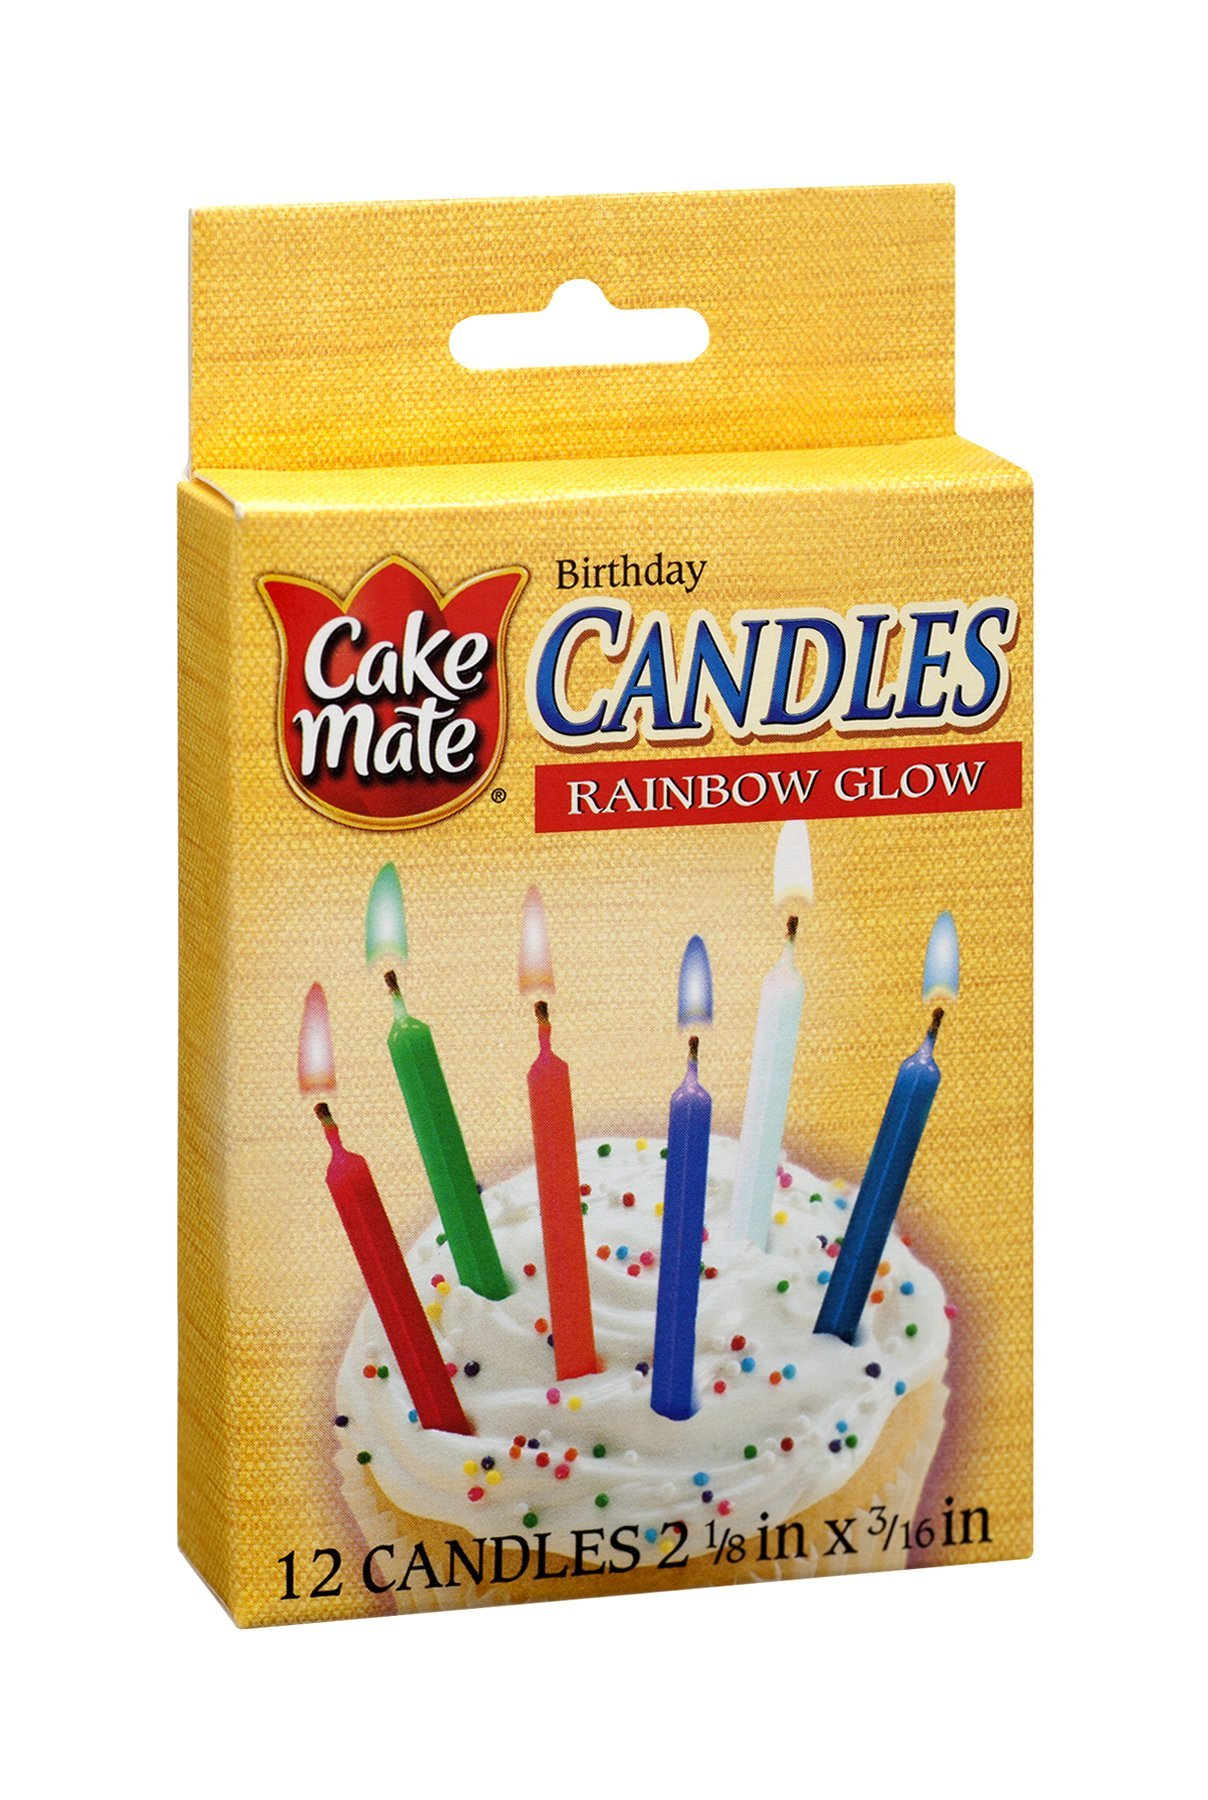 Cake Mate Rainbow Glow Birthday Candles 12 CT (Pack of 24) by Cake Mate